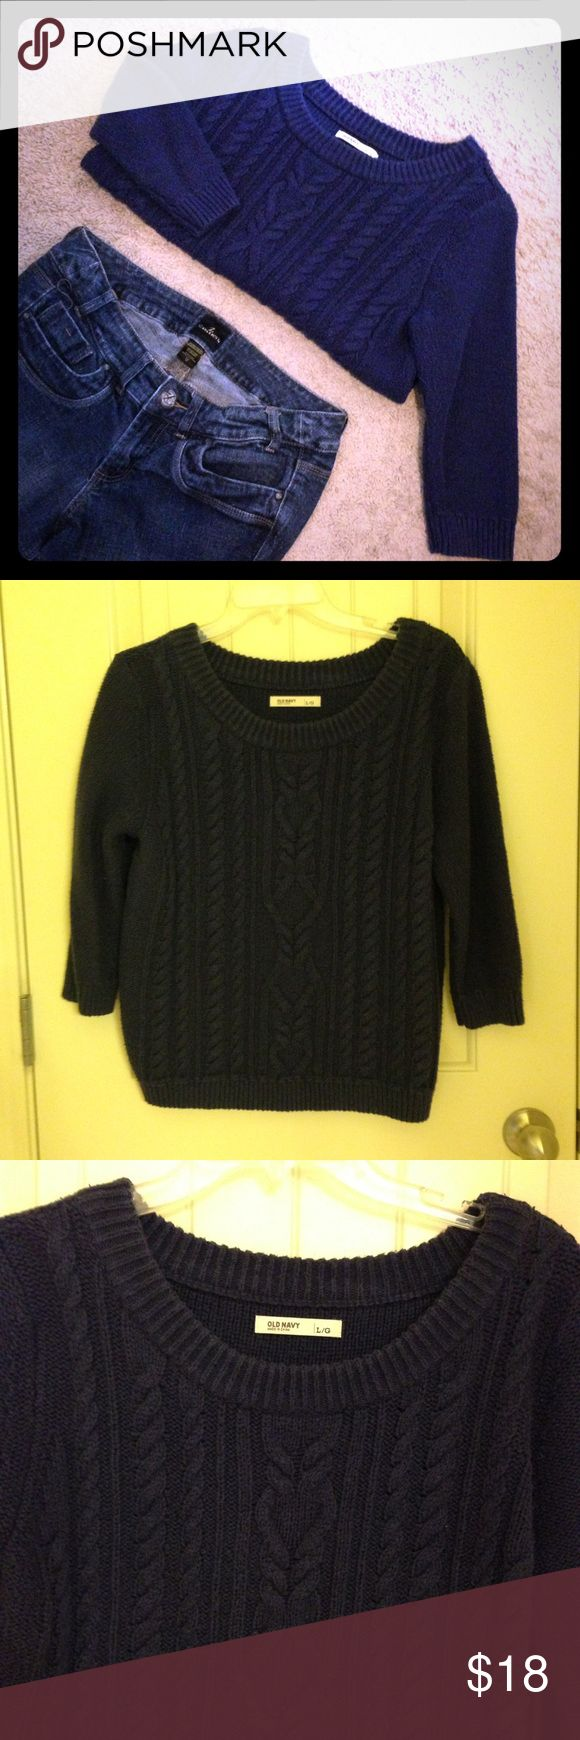 Navy blue short chunky sweater Comfy blue Old Navy sweater. Lovely chunky sweater is short with 3/4 sleeve. Cute piece! Good condition! Old Navy Sweaters Crew & Scoop Necks